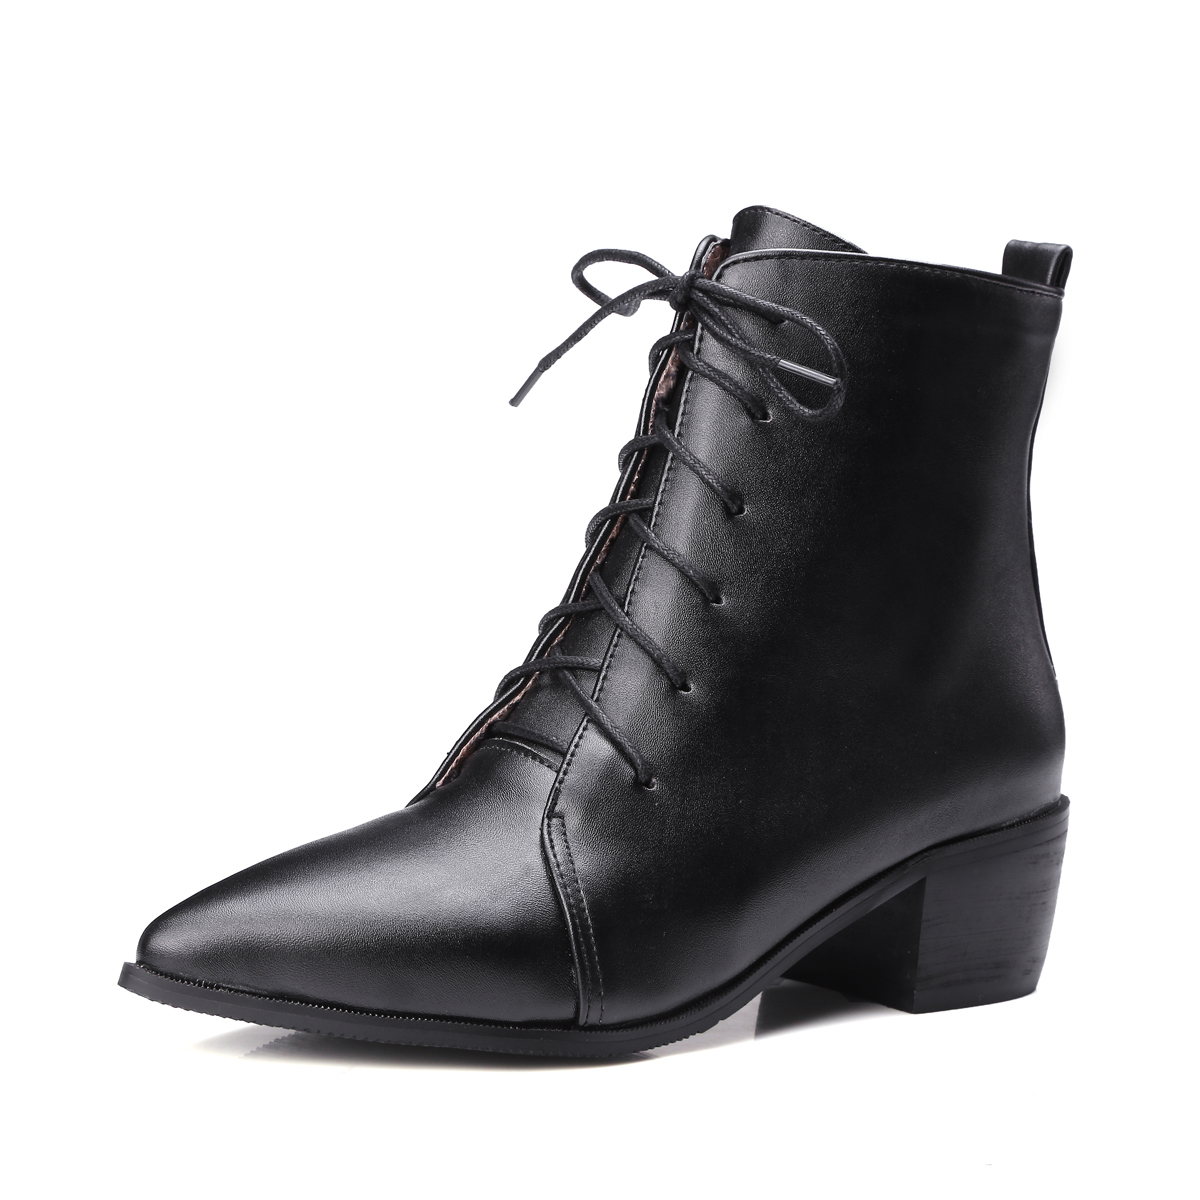 ENMAYER New Fashion women  pointed toe cross-tied ankle boots lady square heel ankle boots Big size 34-43 ZYL657